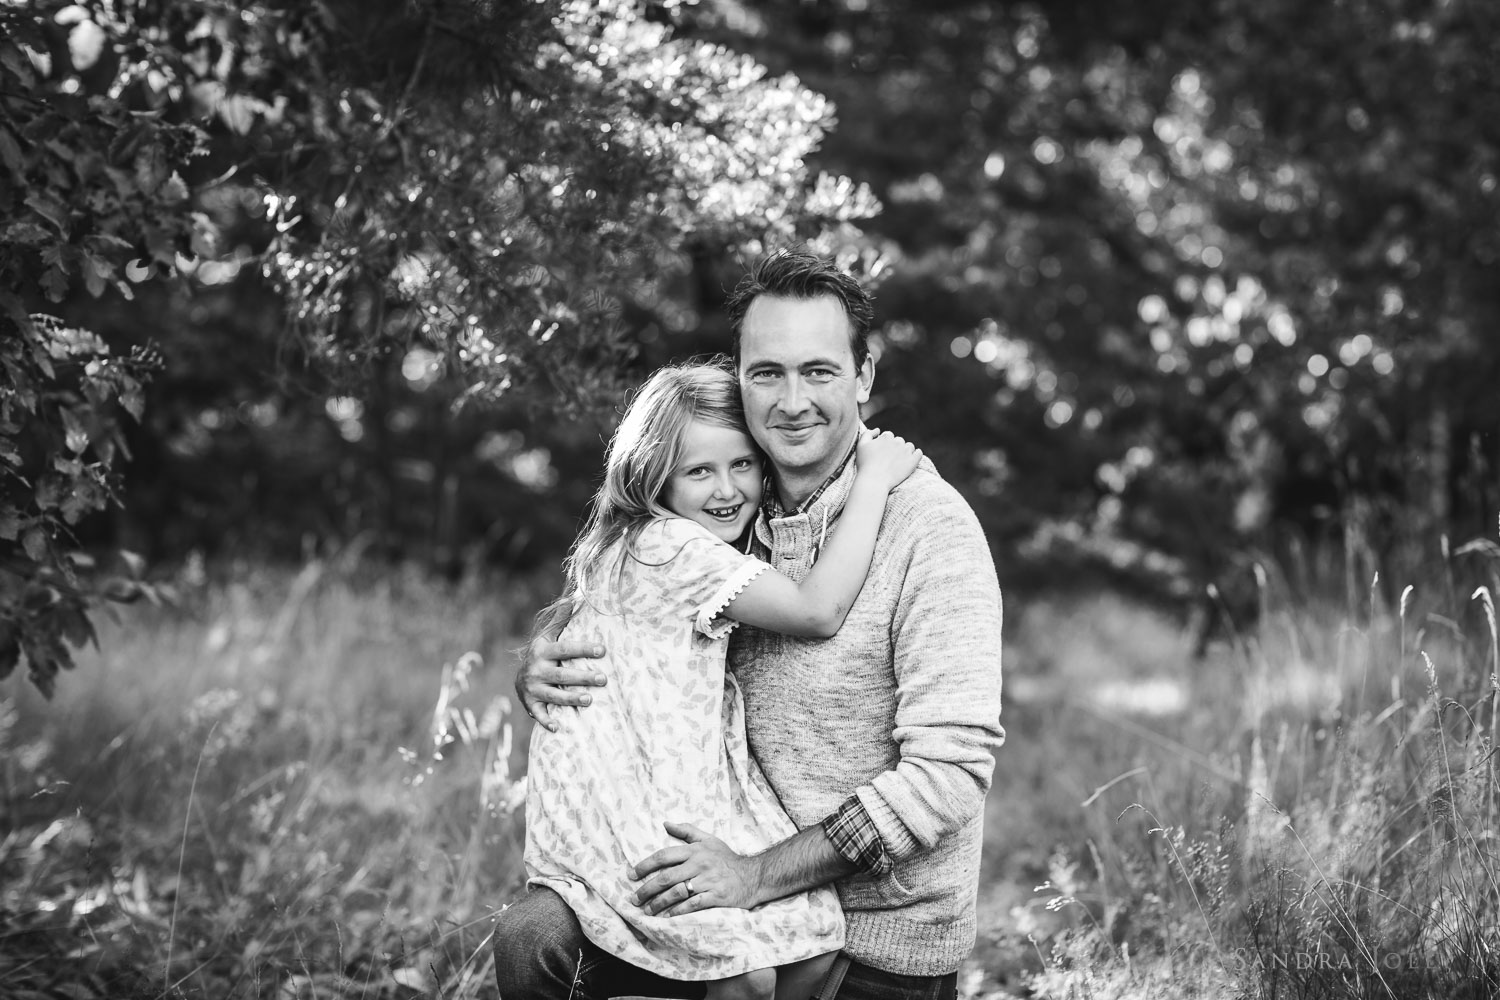 Father-and-daughter-portrait-by-Stocksund-family-photographer-Sandra-Jolly.jpg